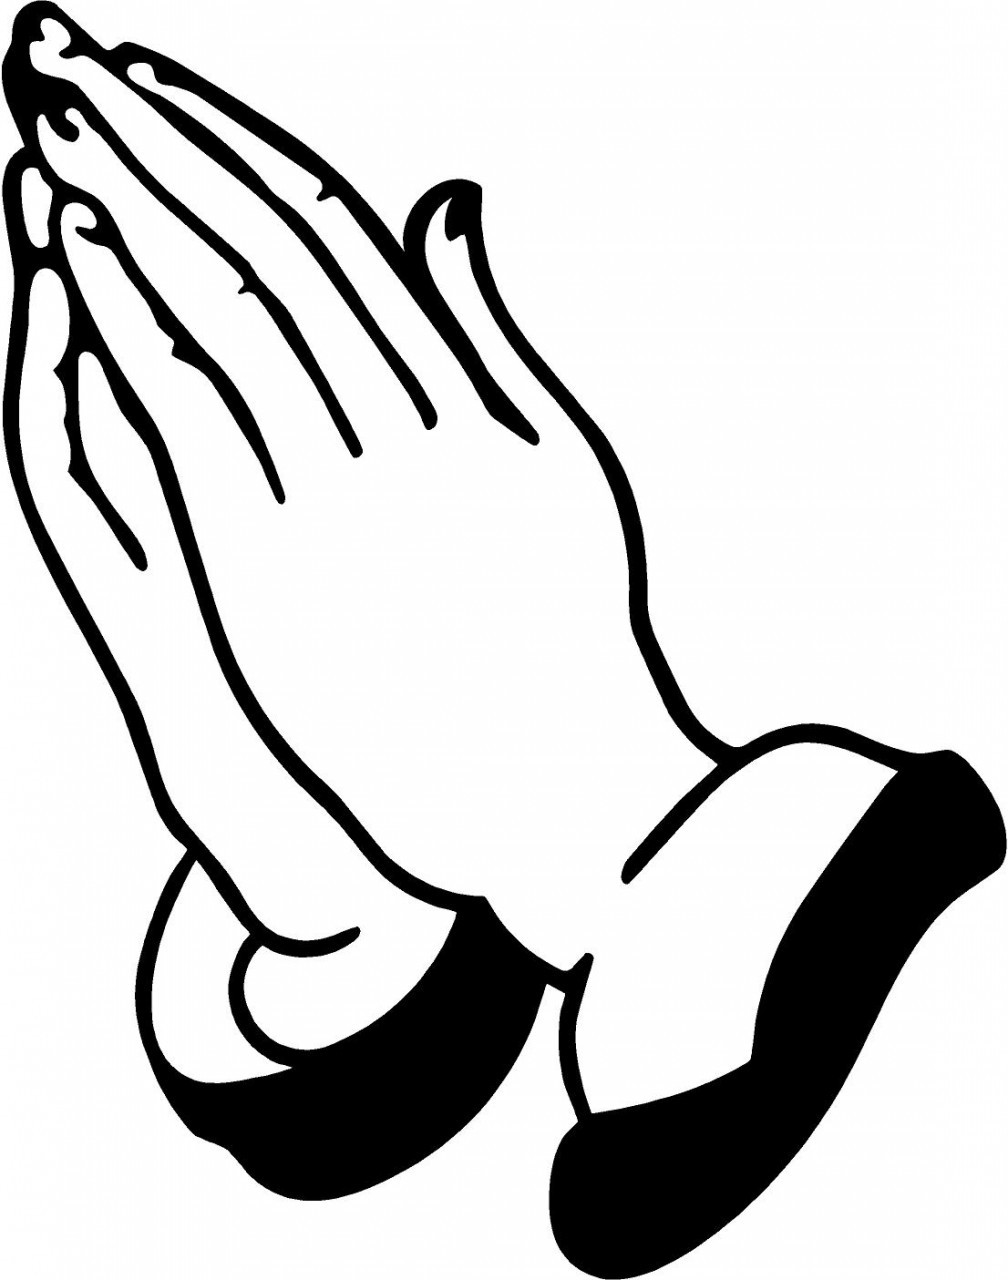 Namaste Hand Png Free Namaste Hand Png Transparent Images 3607 Pngio Large collections of hd transparent hand png images for free download. namaste hand png transparent images